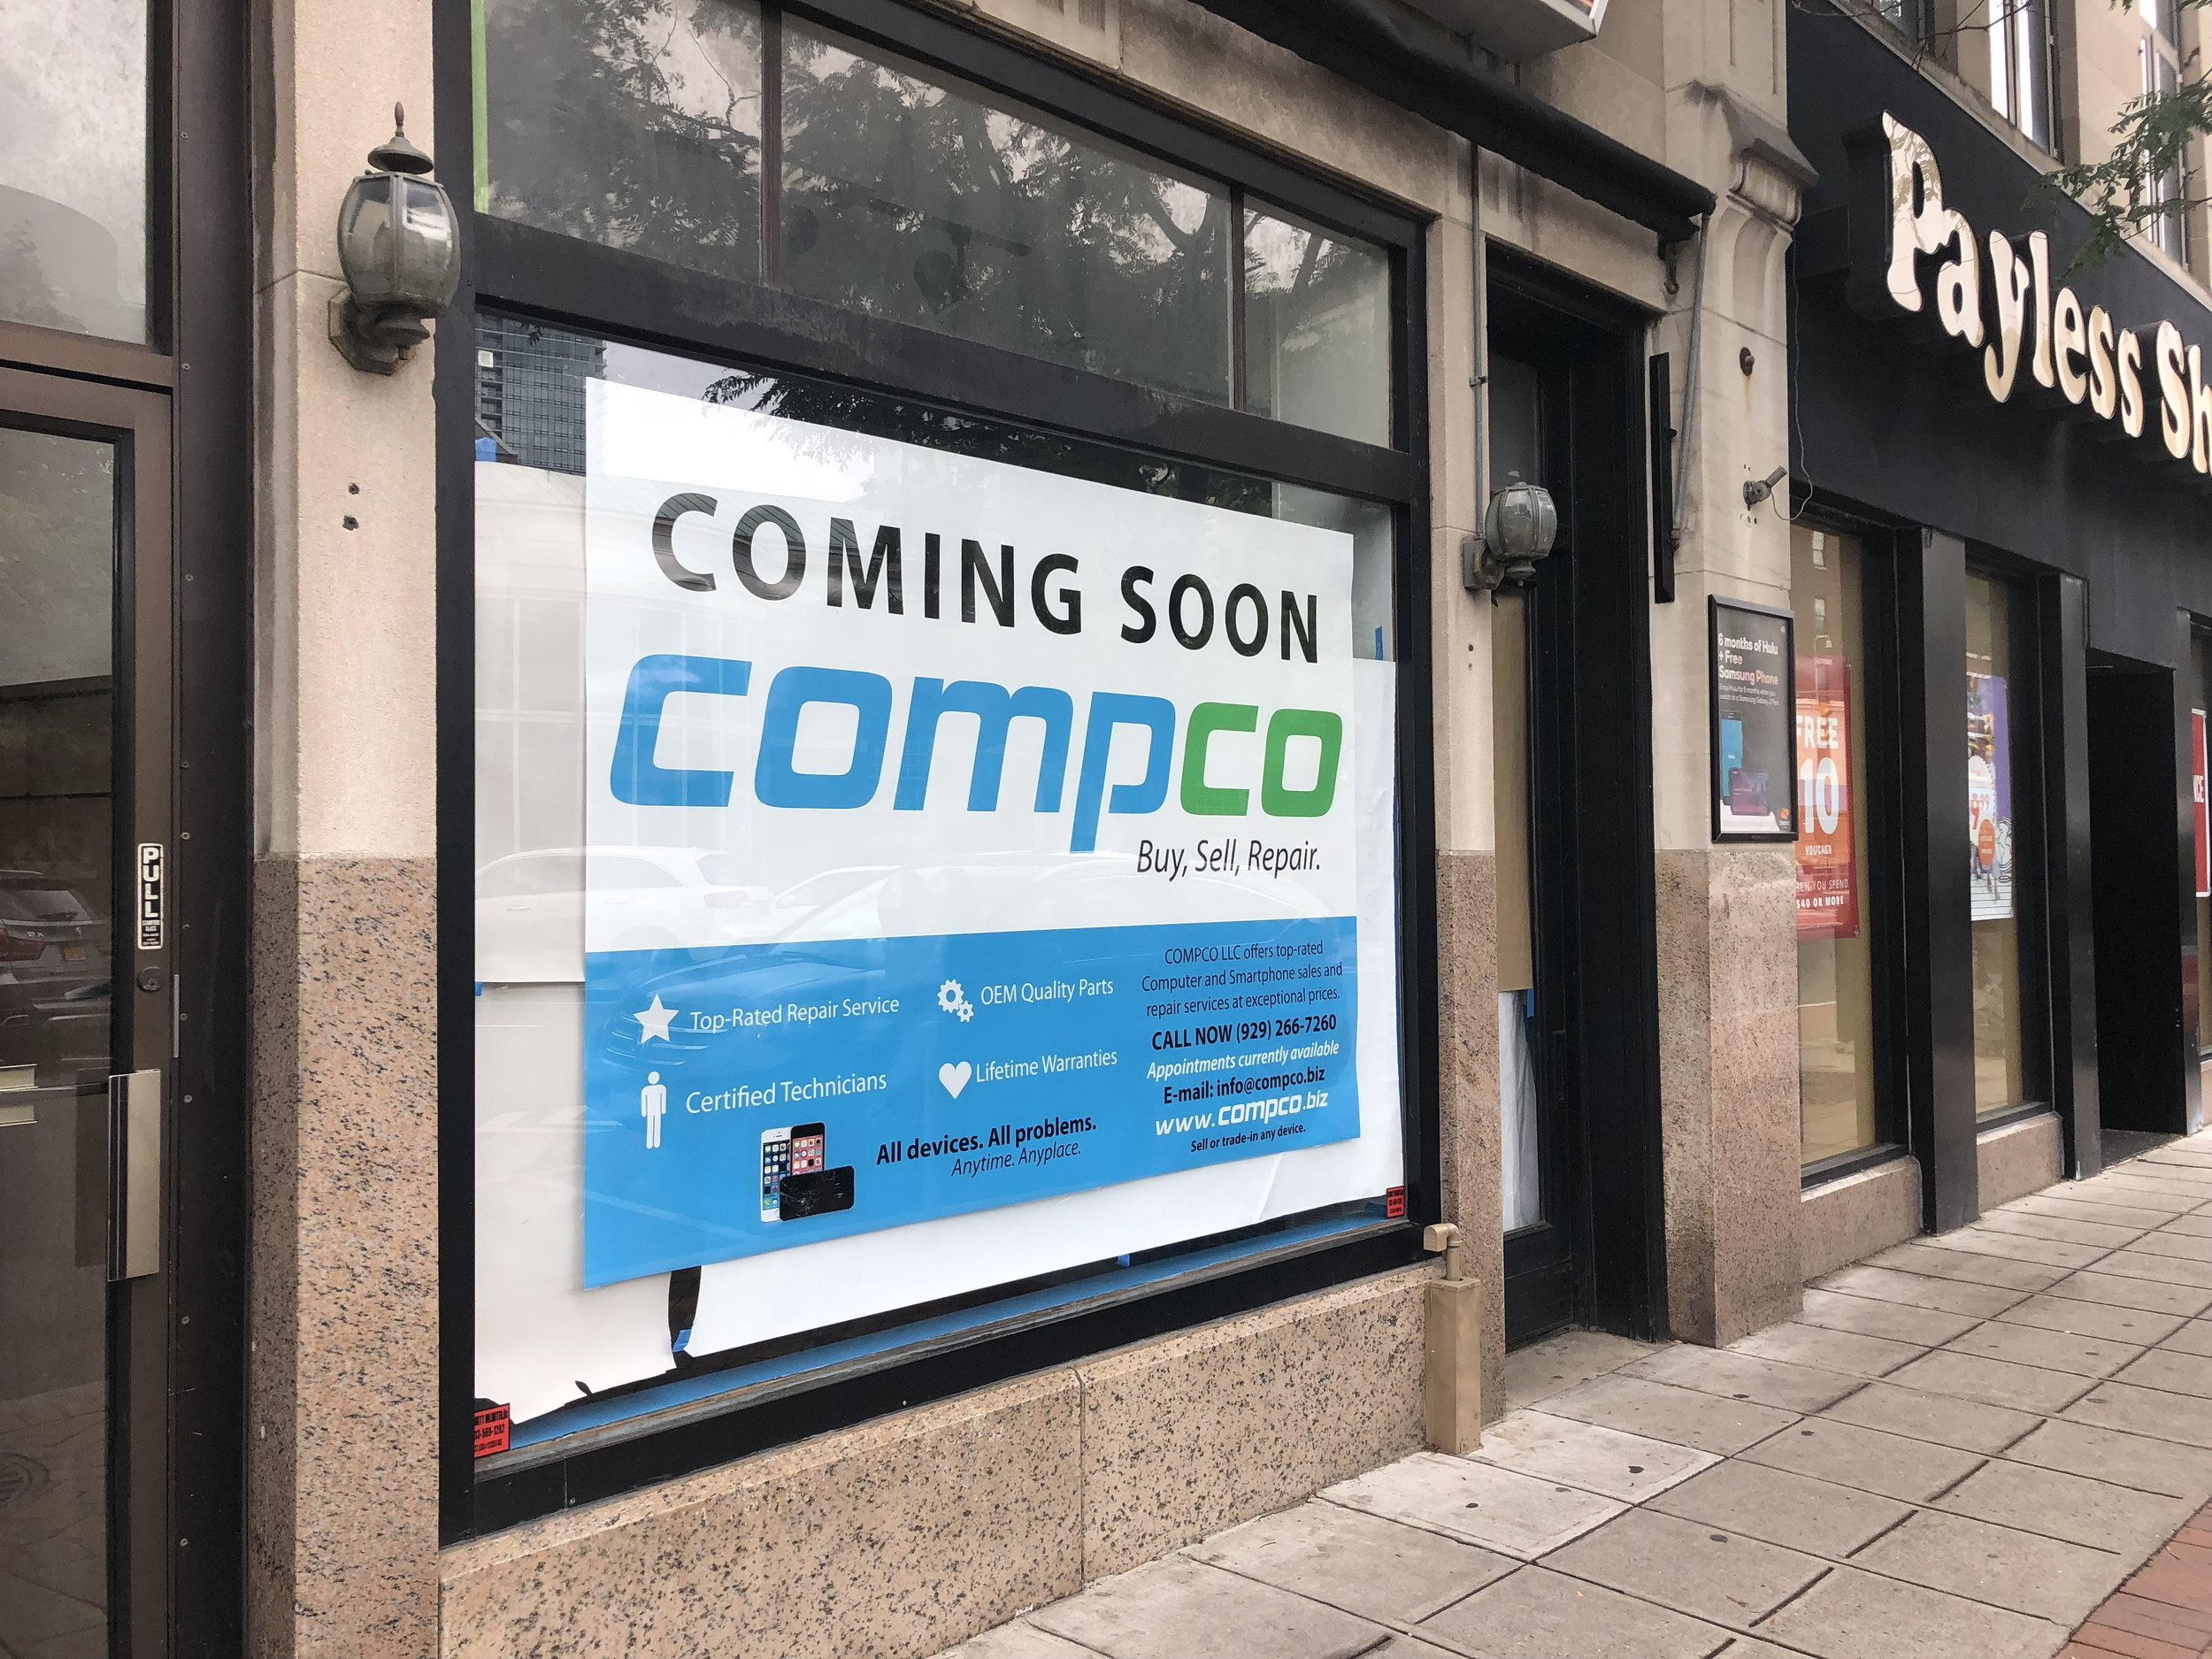 New Compco coming soon sign - August 2018